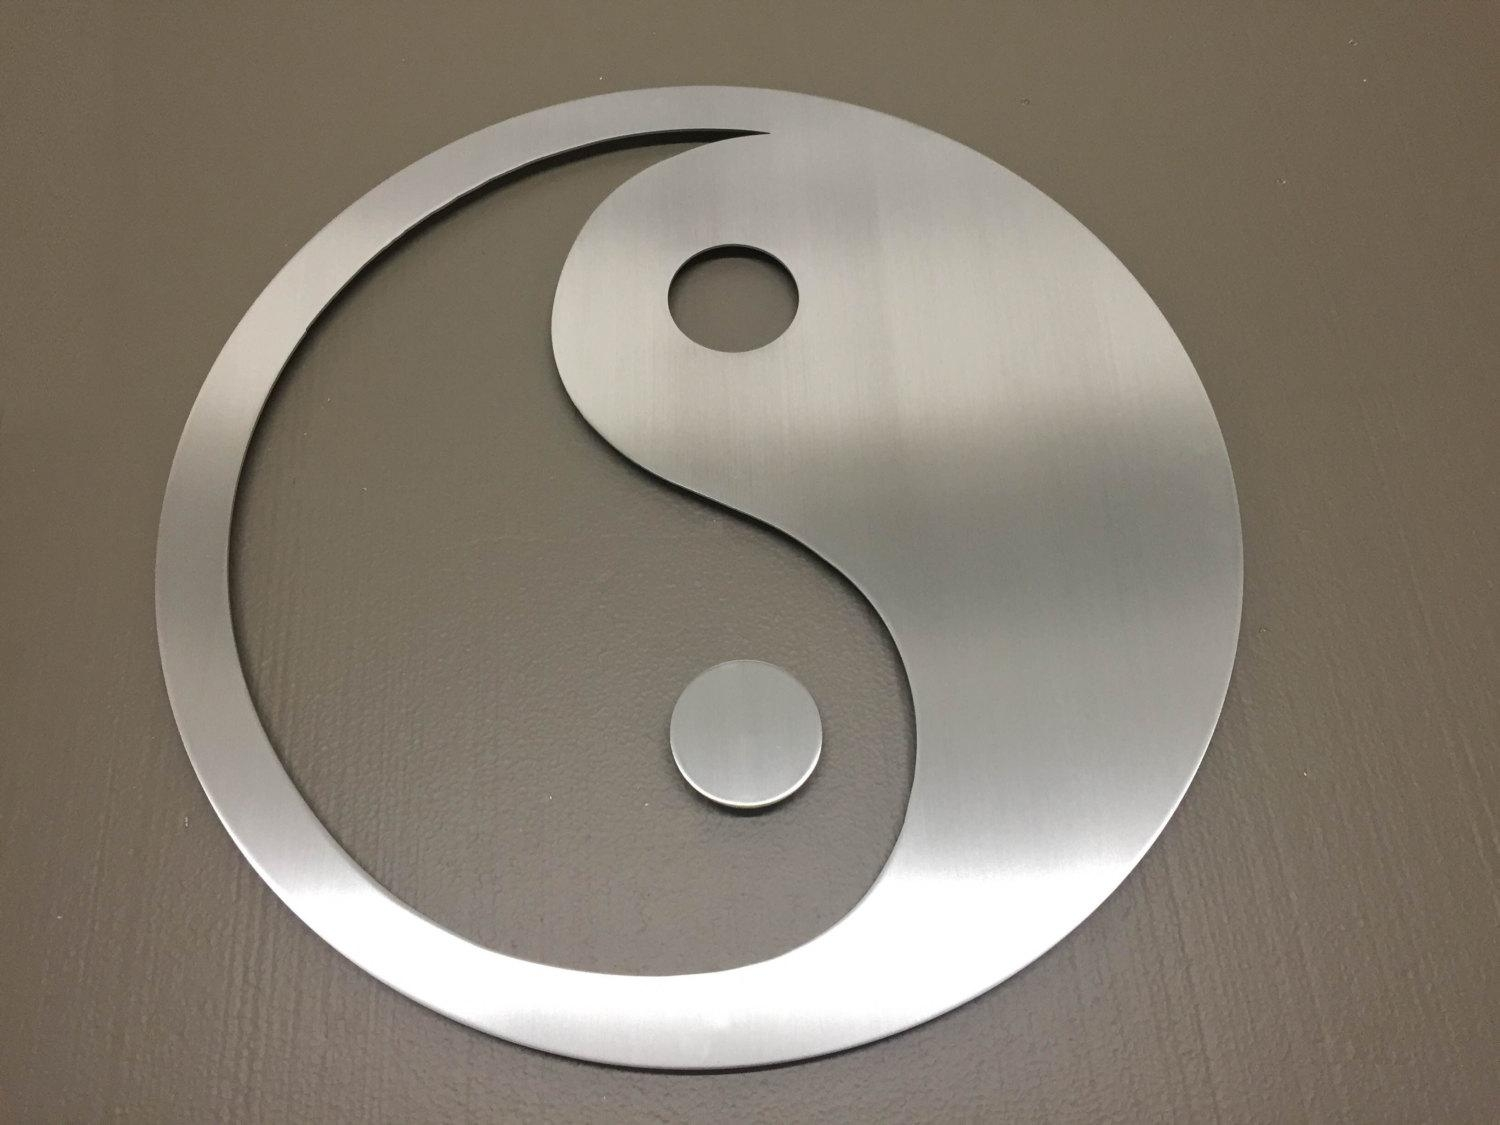 Yin Yang Metal Wall Art Wall Art Metal Wall Decor Metal inside Yin Yang Wall Art